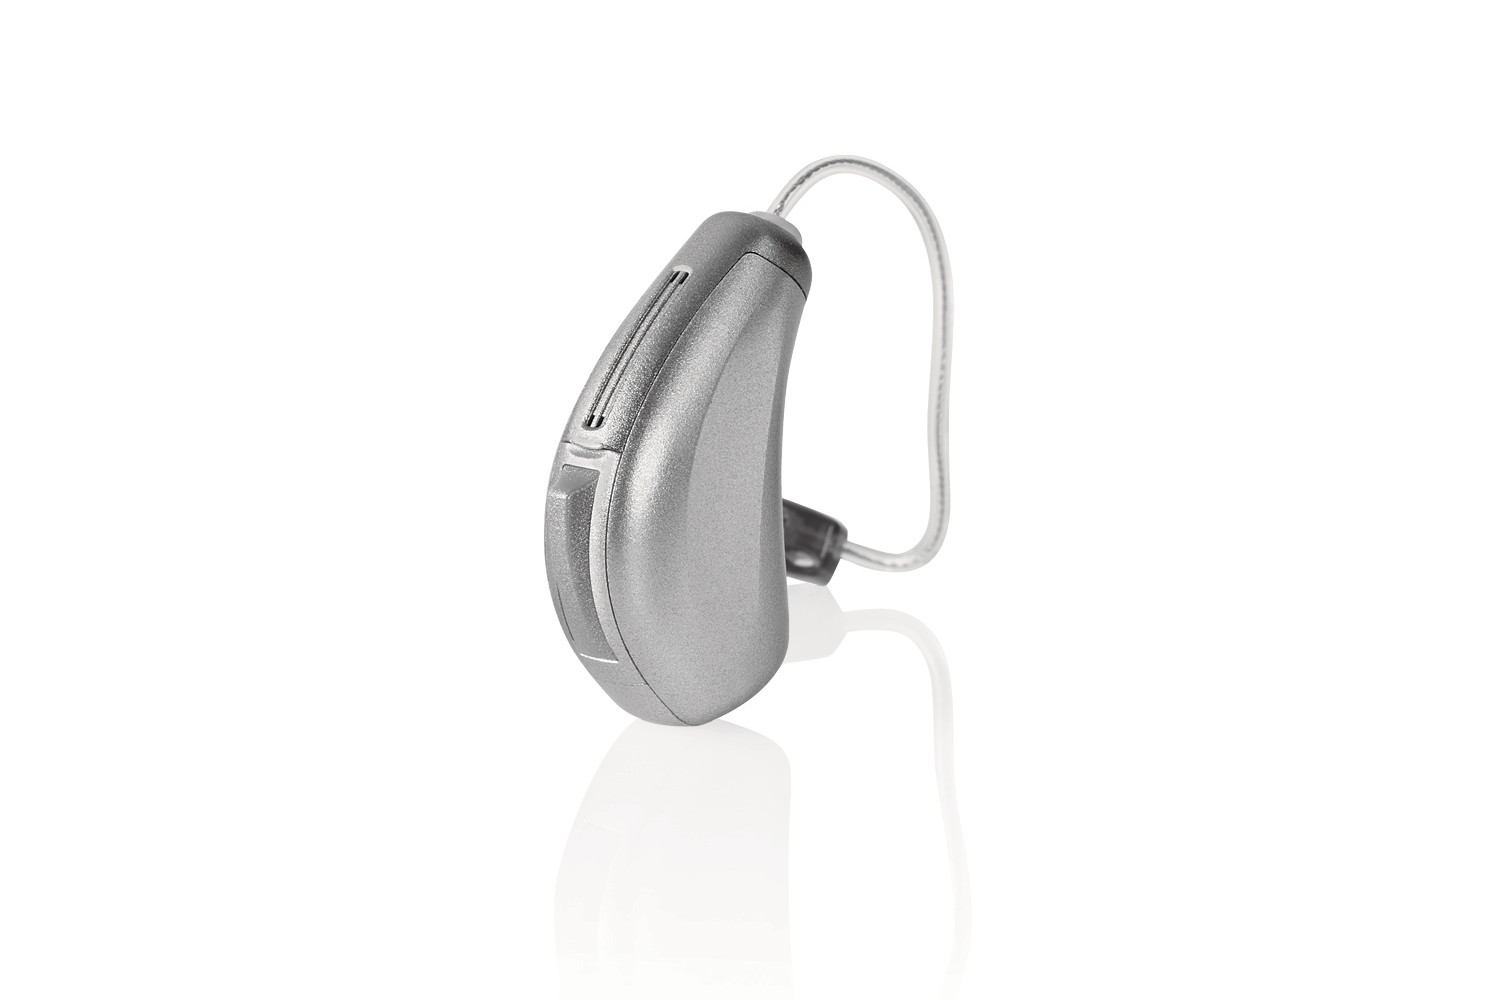 receiver-in-canal-hearing-aid-asi